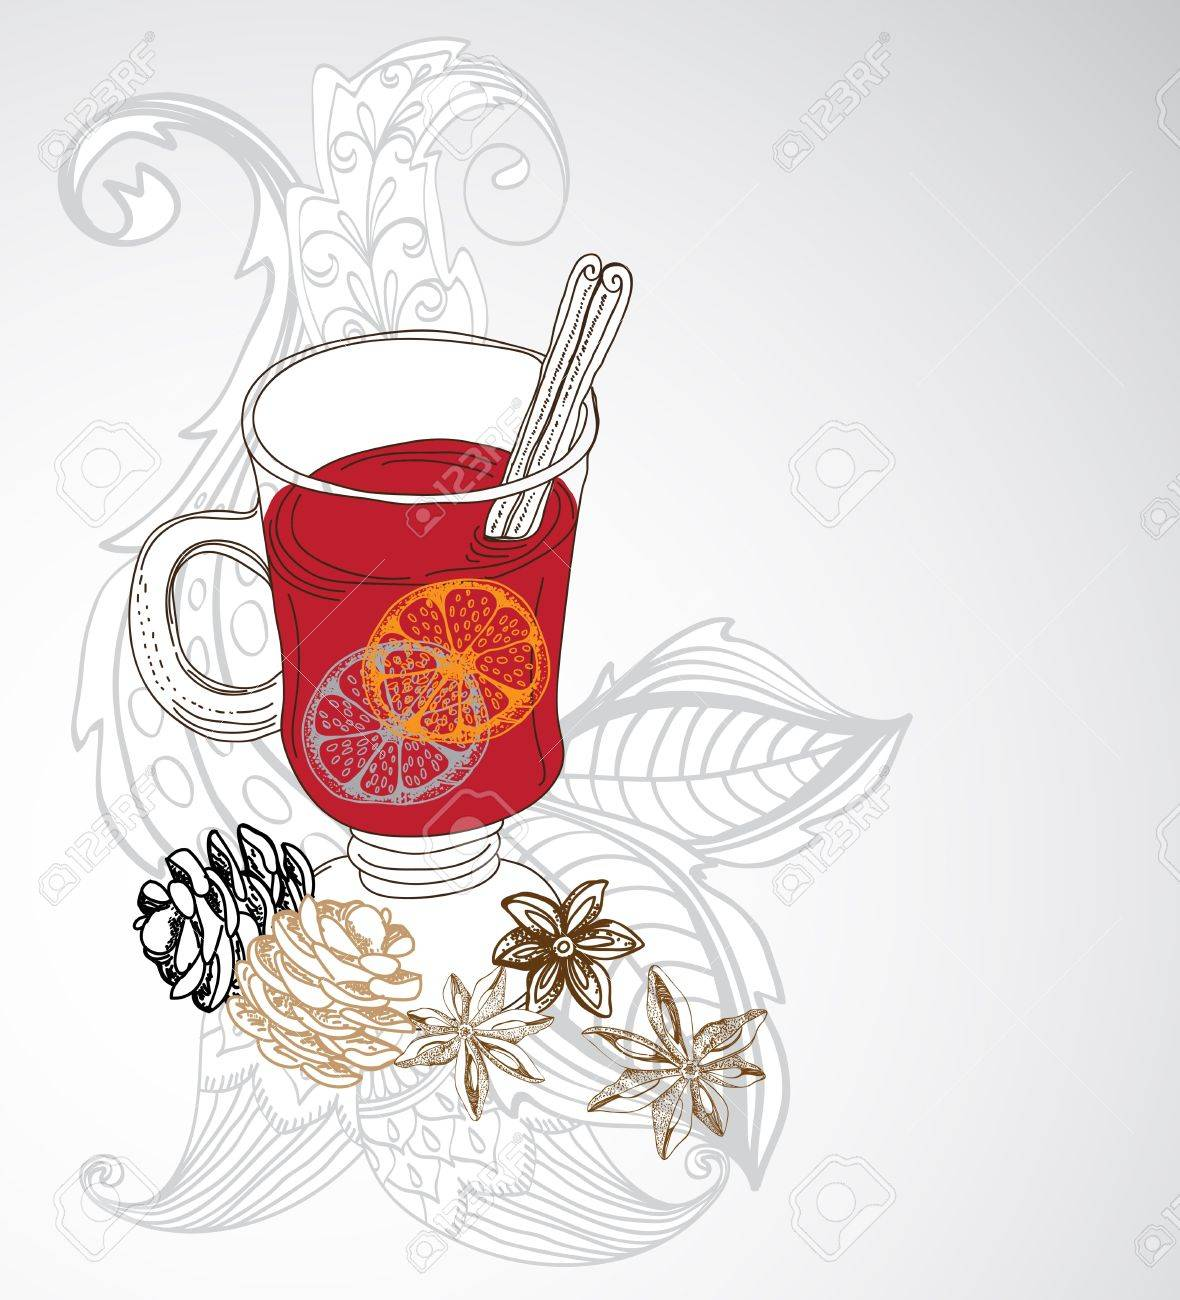 mulled warm wine background, illustration for design with floral elements Stock Vector - 16899251